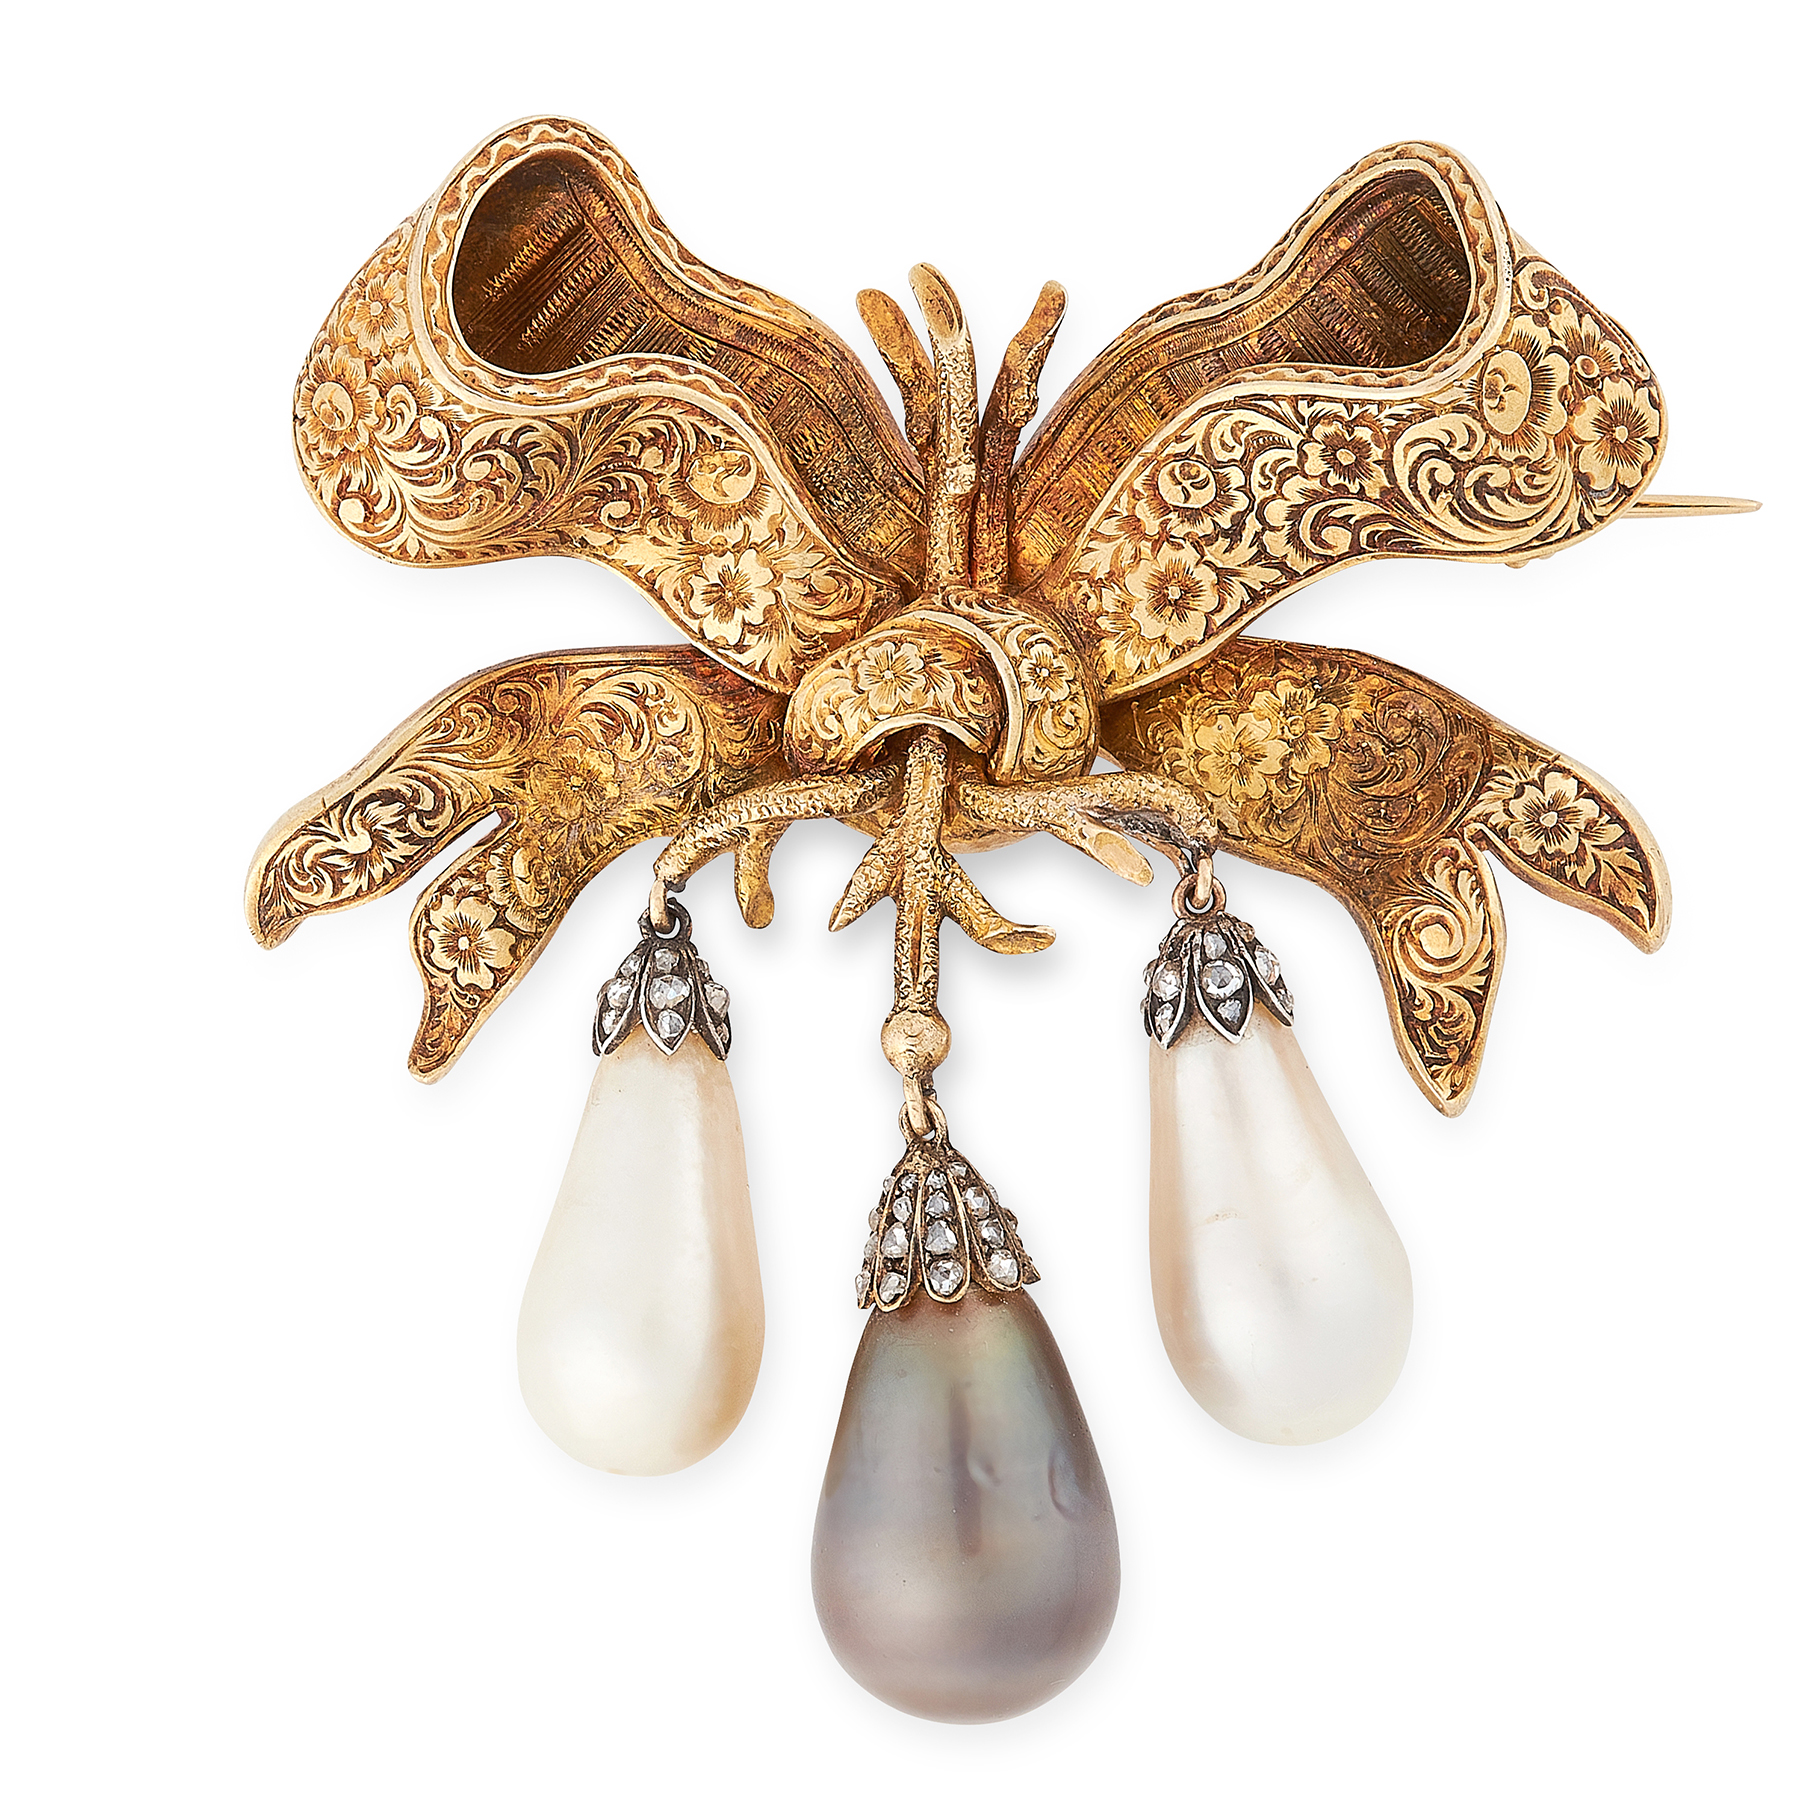 AN IMPORTANT ANTIQUE BLACK AND WHITE NATURAL PEARL AND DIAMOND BROOCH, 19TH CENTURY in yellow